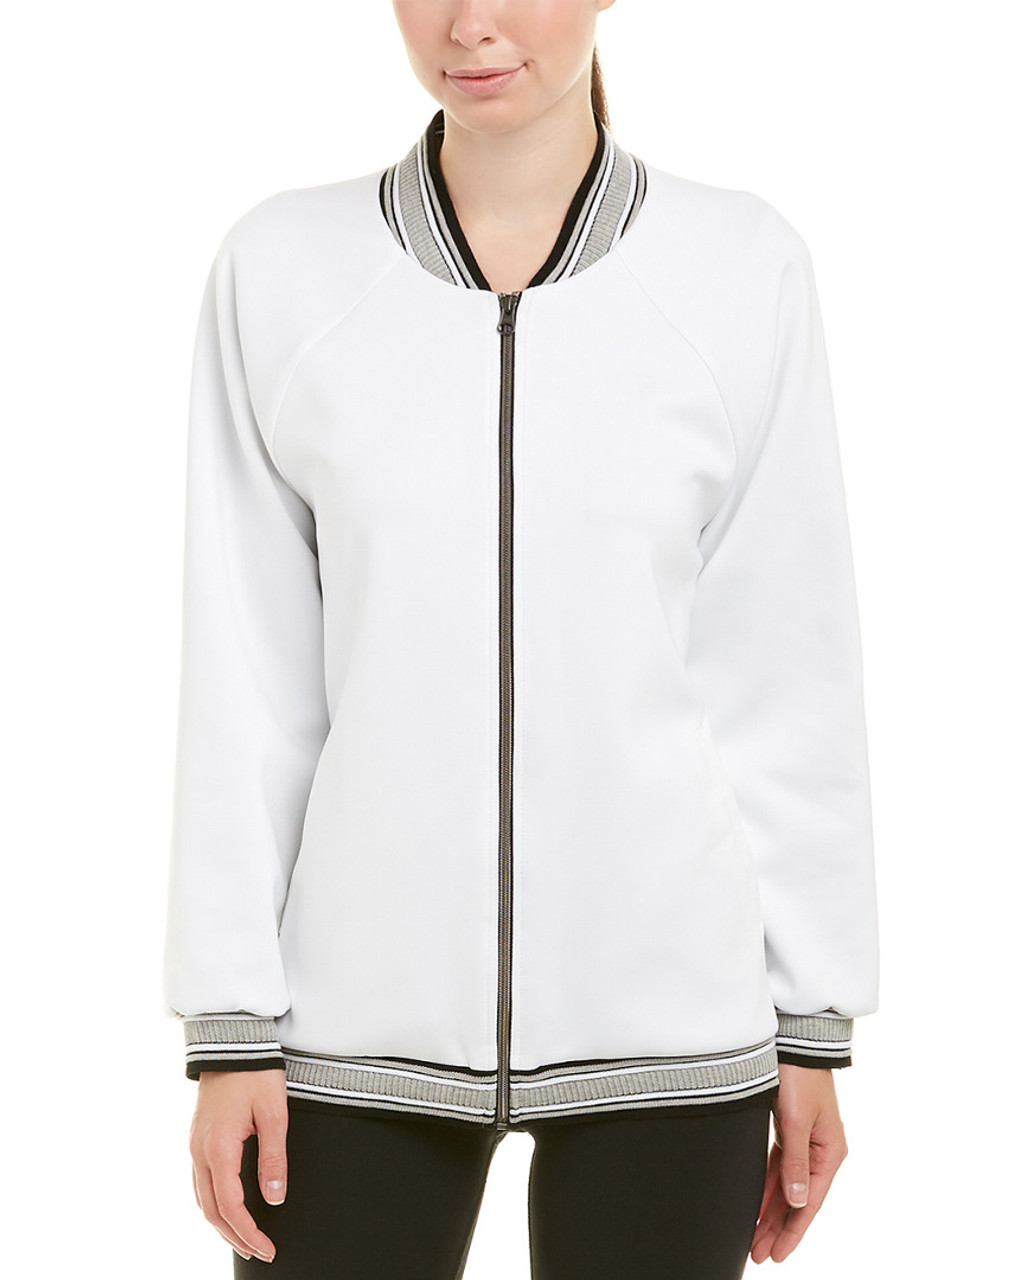 7189d65a09 Koral Activewear Recovery Bomber Jacket~1411731378 - Carsons